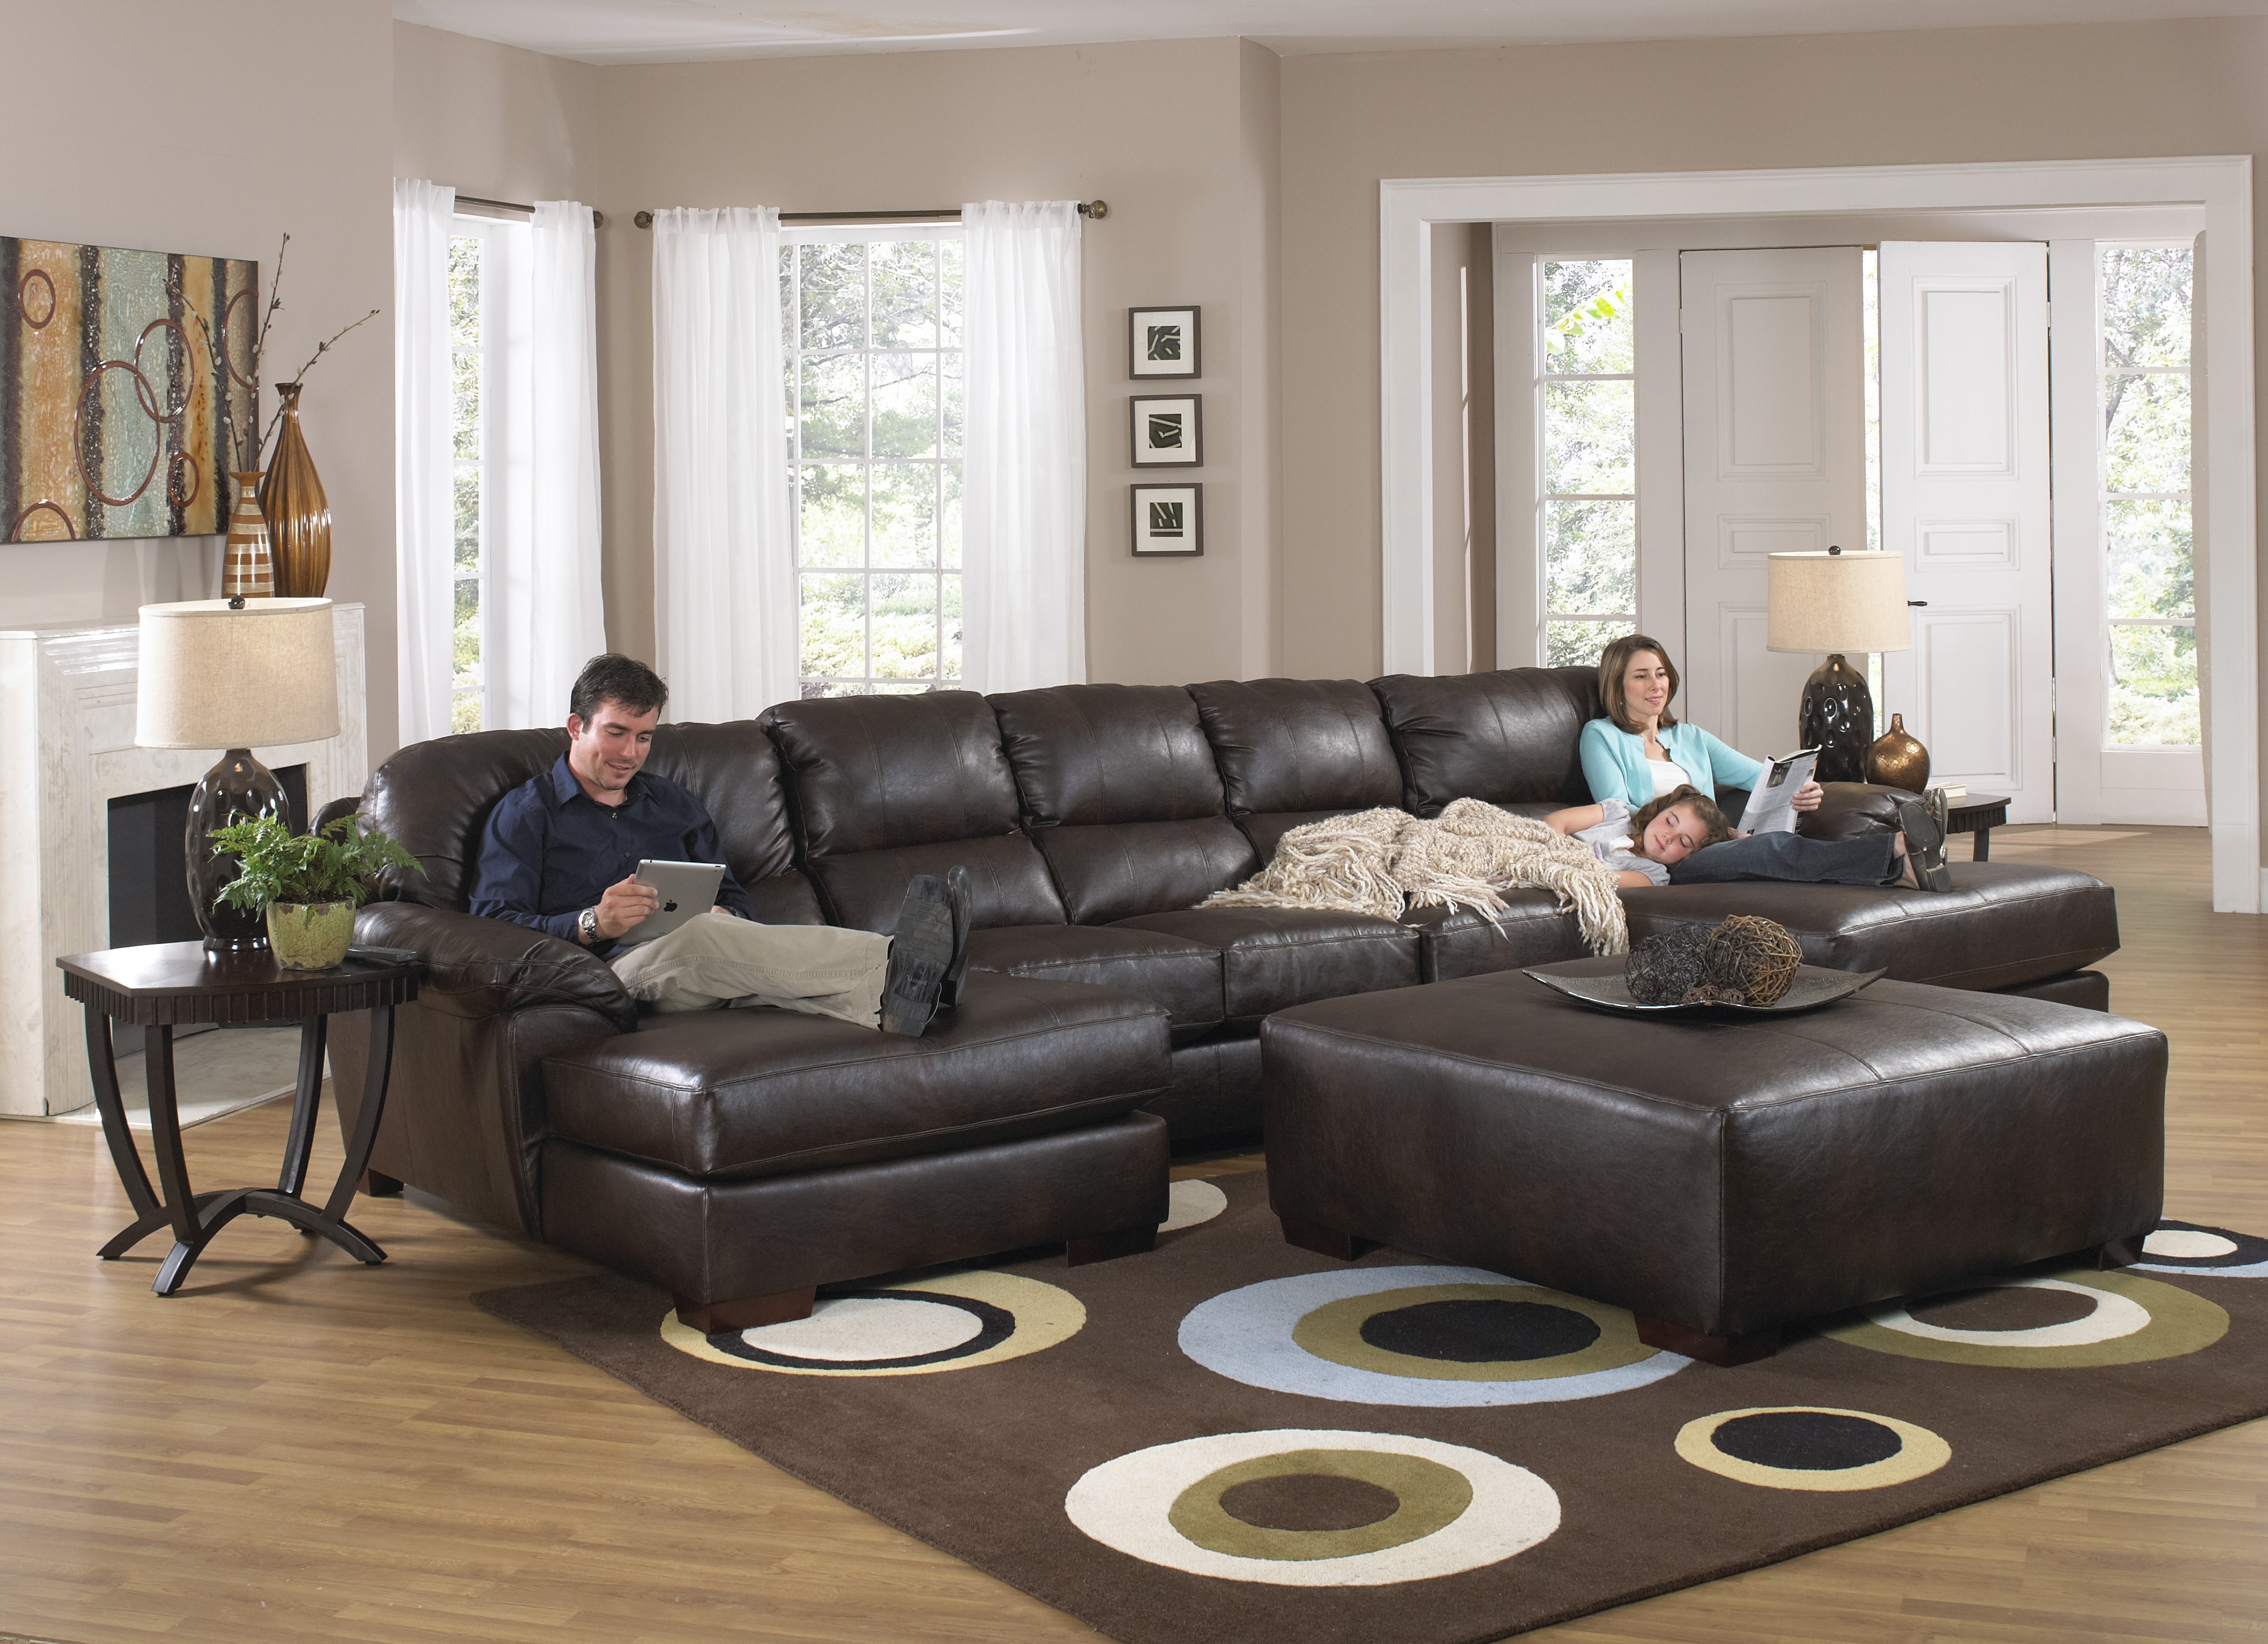 Current Black Modern Couch Sleeper Sofa Leather Sectionals With Recliners For Sectional Sofas With Recliner And Chaise Lounge (View 10 of 15)